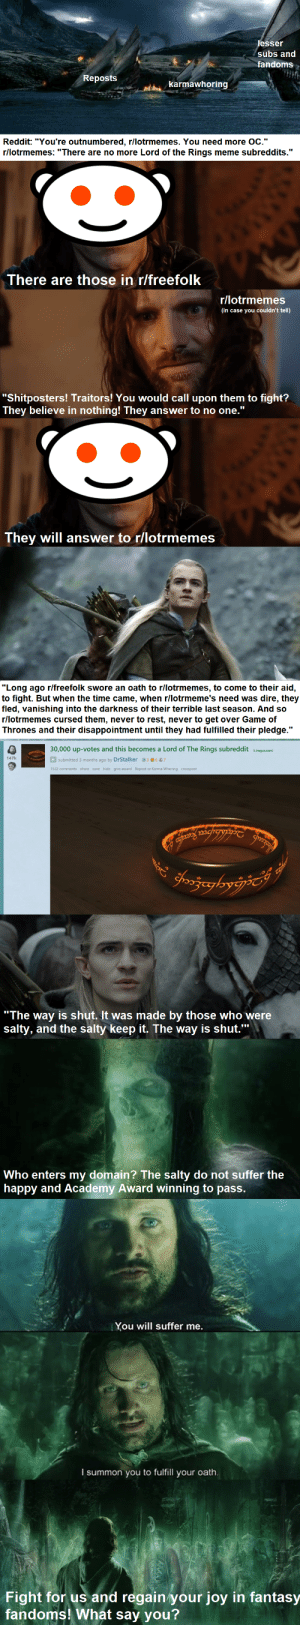 """Happy Friday: lesser  subs ann  fandoms  Reposts  karmawhoring  Reddit: """"You're outnumbered, r/lotrmemes. You need more OC.""""  r/lotrmemes: """"There are no more Lord of the Rings meme subreddits.""""  There are those in r/freefolk  r/lotrmemes  (in case you couldn't tell)  """"Shitposters! Traitors! You would call upon them to fight?  They believe in nothing! They answer to no one.""""  They will answer to r/lotrmemes  """"Long ago r/freefolk swore an oath to r/lotrmemes, to come to their aid,  to fight. But when the time came, when r/lotrmeme's need was dire, they  fled, vanishing into the darkness of their terrible last season. And so  r/lotrmemes cursed them, never to rest, never to get over Game of  Thrones and their disappointment until they had fulfilled their pledge.""""  30,000 up-votes and this becomes a Lord of The Rings subreddit (imgur.com  147k  submitted 3 months ago by DrStalker3 637  1522 comments share save hide give award Repost or Karma Whoring crosspost  mcrgypT  chooza  Jeadors  """"The way is shut. It was made by those who were  salty, and the salty keep it. The way is shut.""""  Who enters my domain? The salty do not suffer the  happy and Academy Award winning to pass.  You will suffer me.  I summon you to fulfill your oath.  Fight for us and regain your joy in fantasy  fandoms! What say you? Happy Friday"""